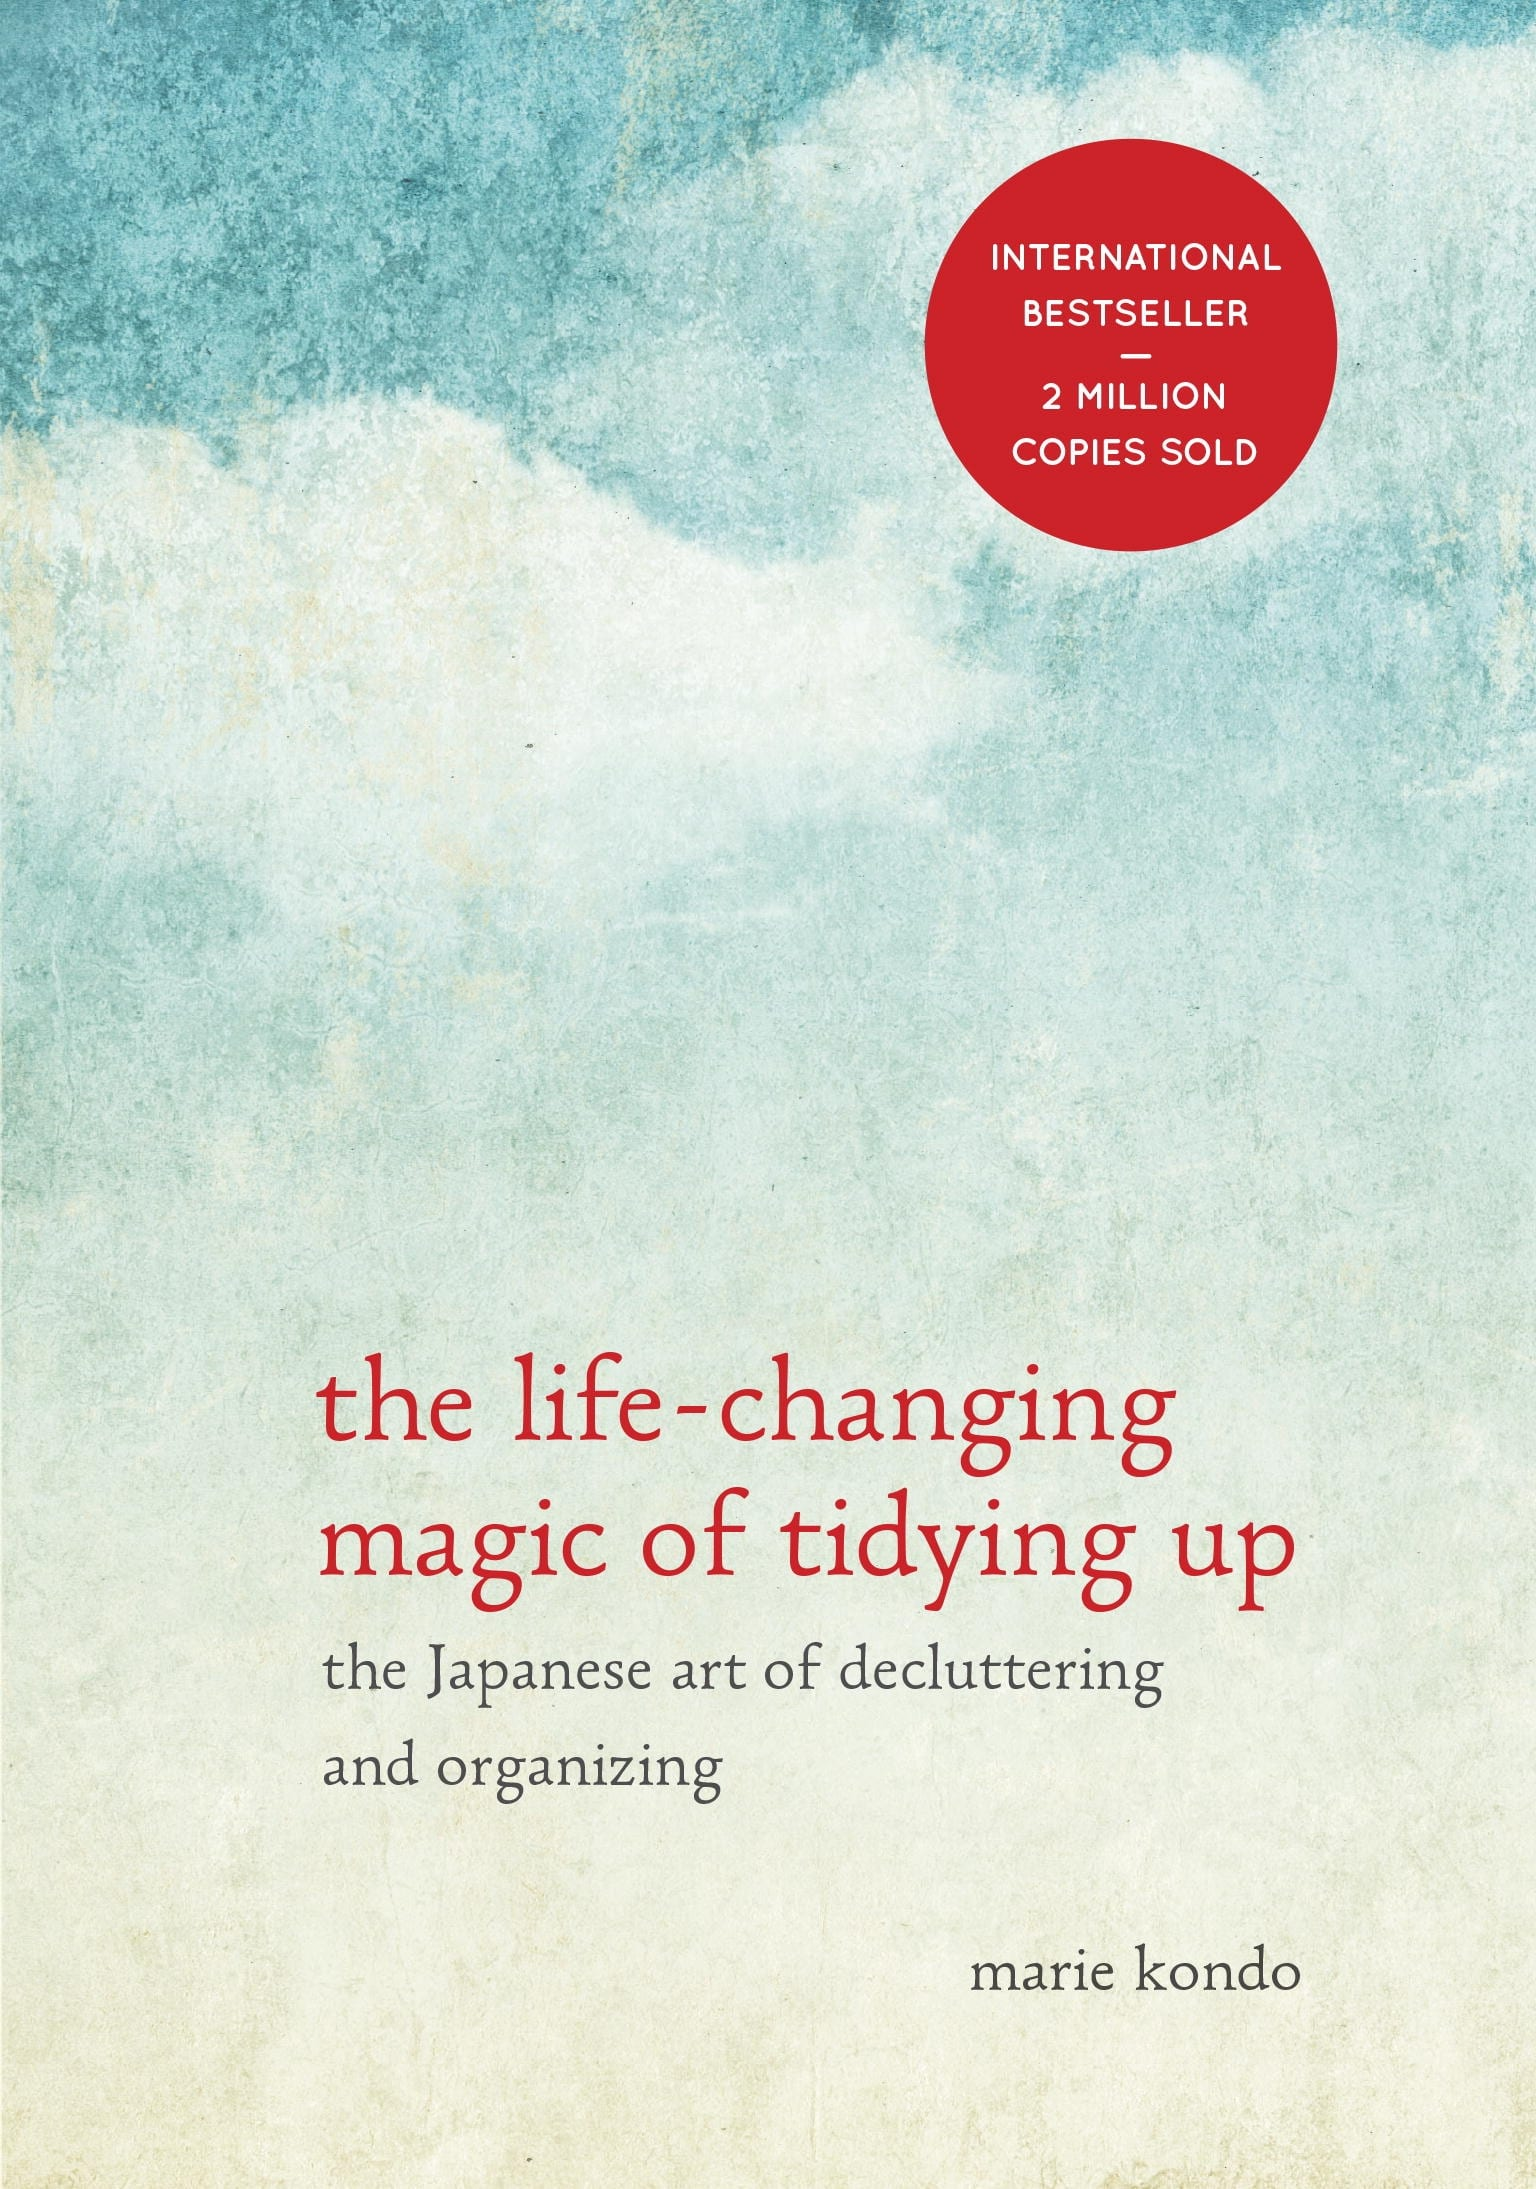 Life changing tidying up